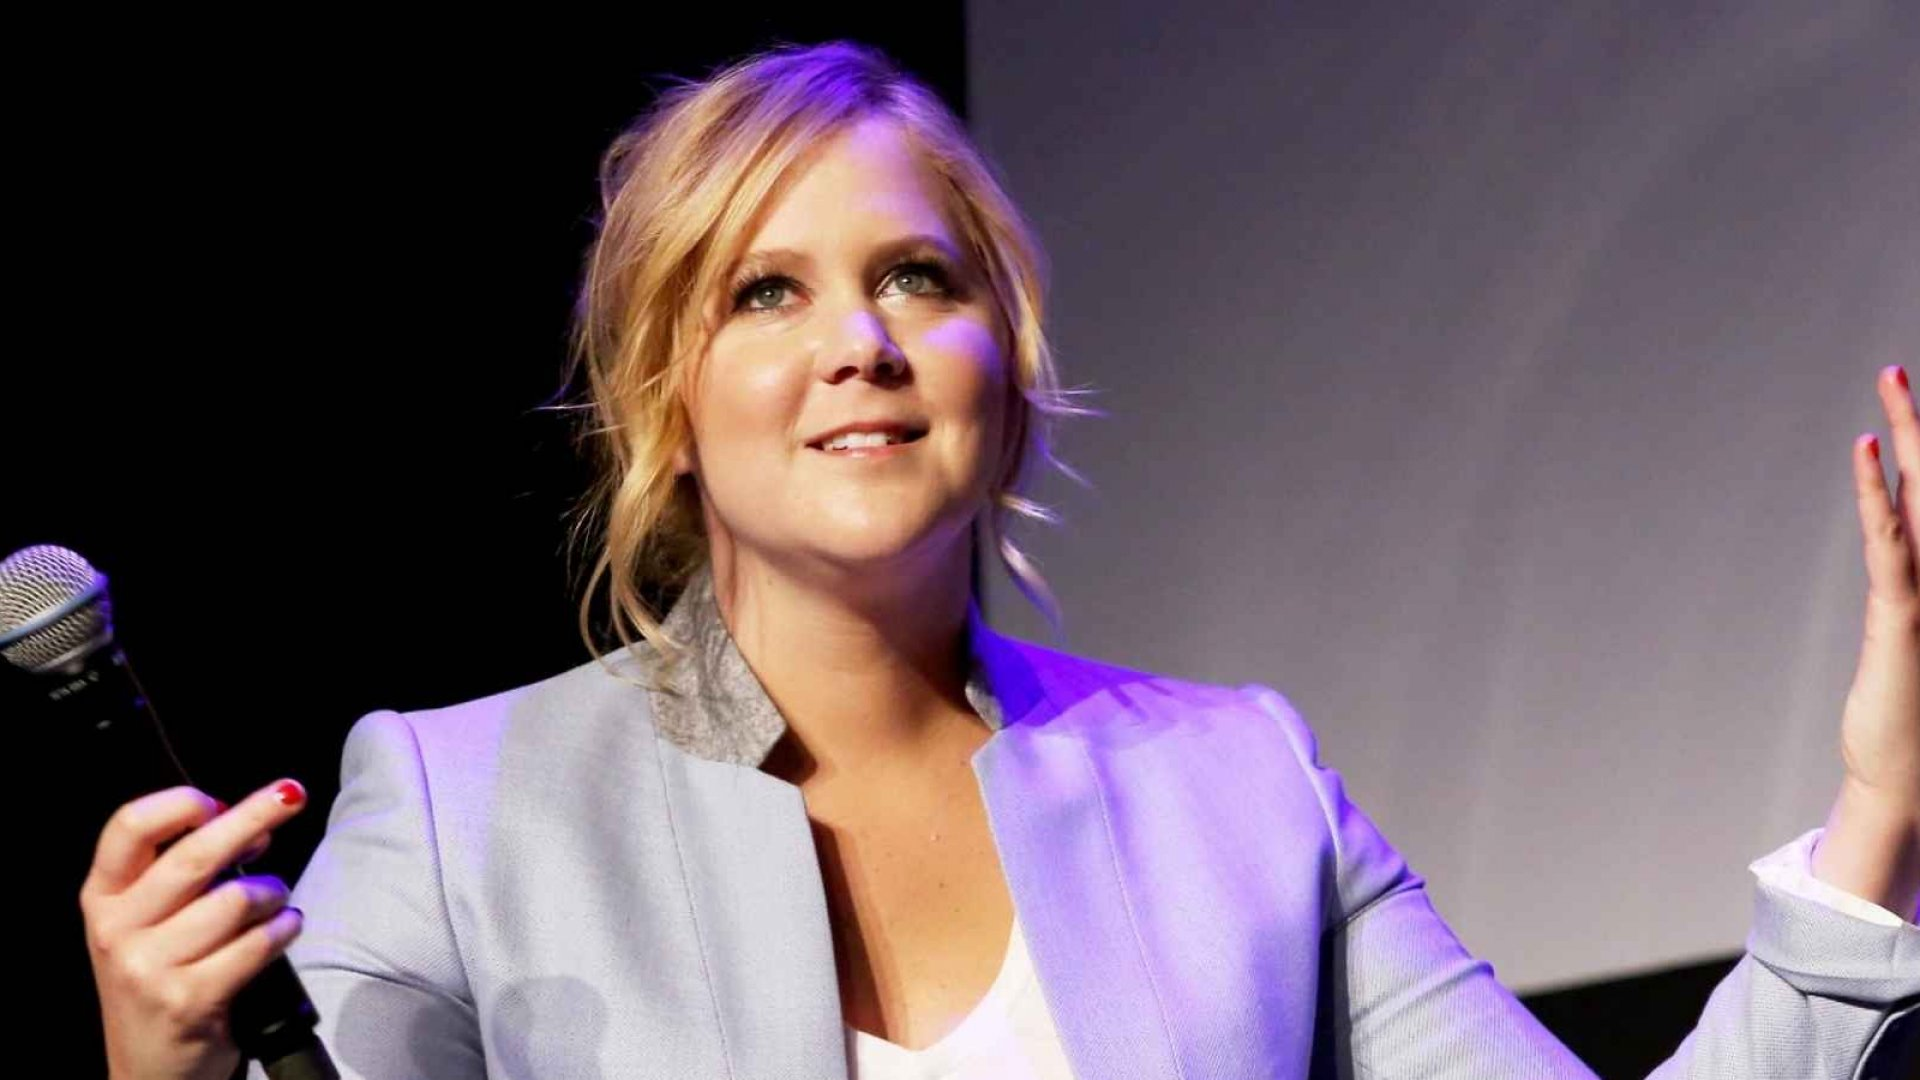 Amy Schumer and the Age of Entitlement